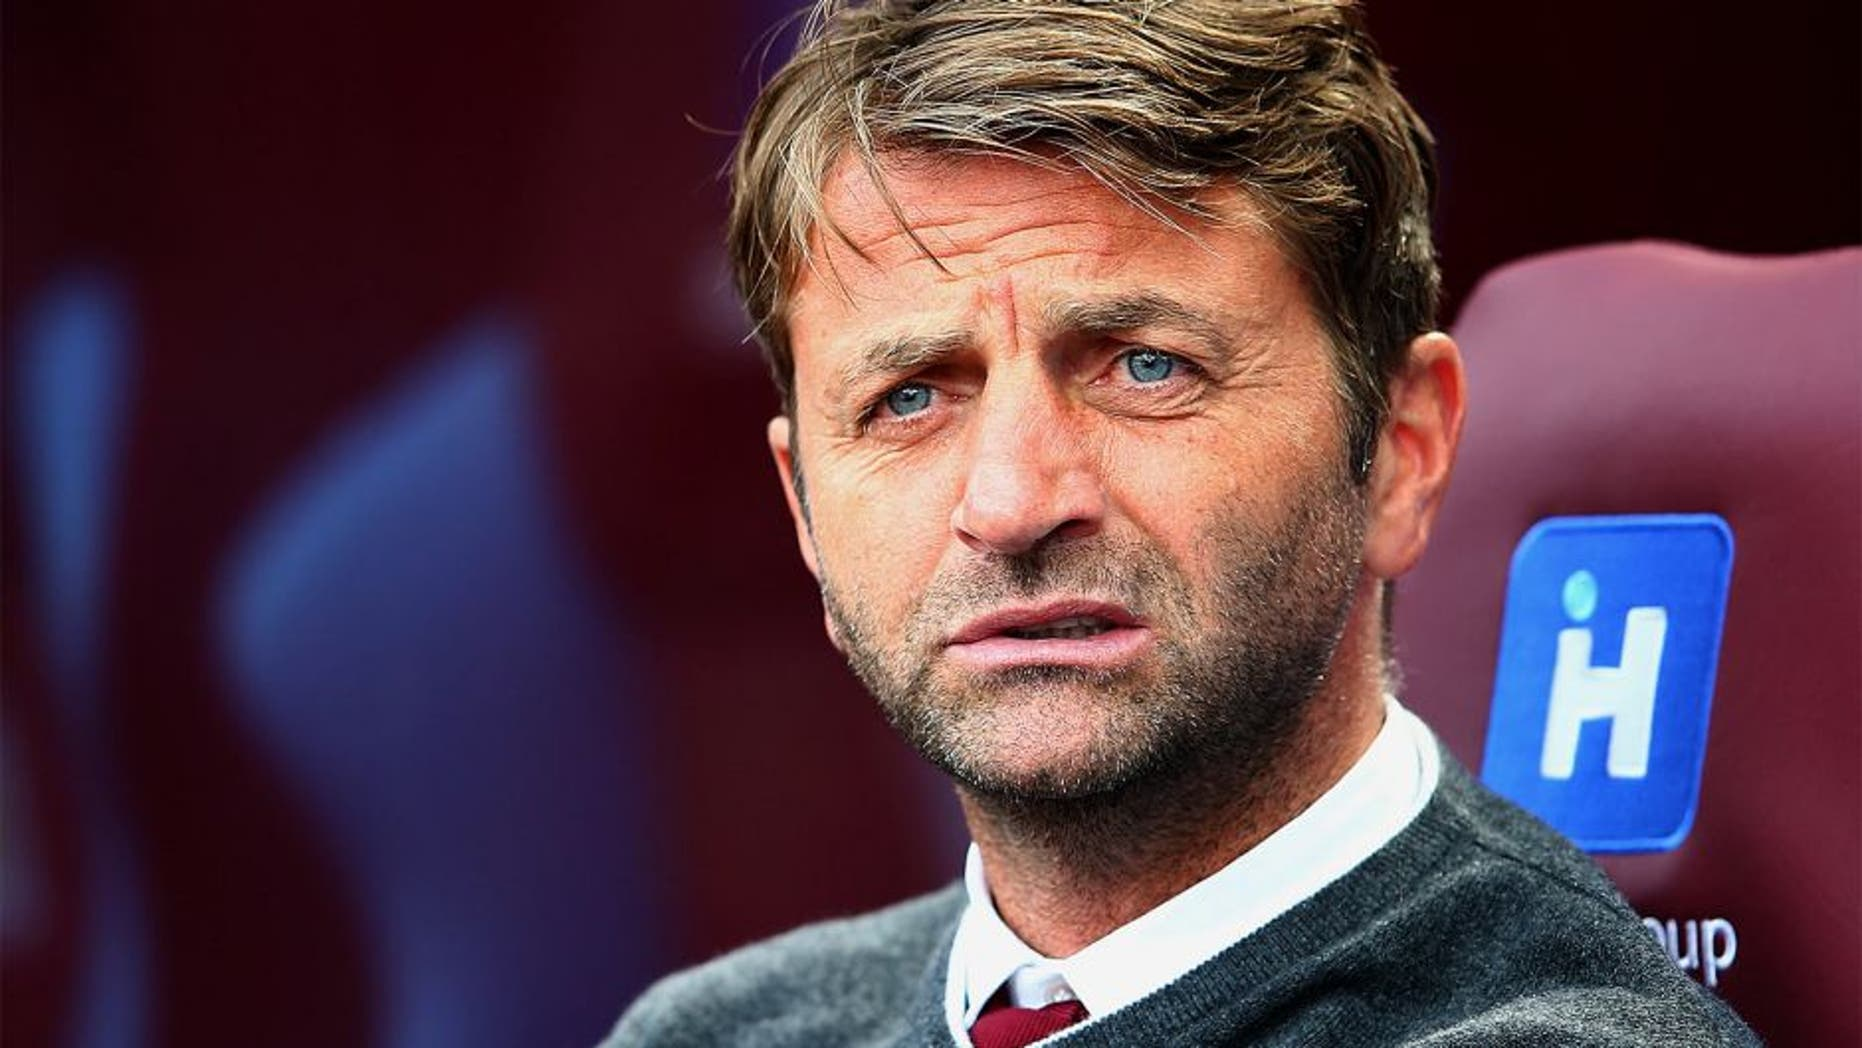 BIRMINGHAM, ENGLAND - AUGUST 29: Tim Sherwood Manager of Aston Villa looks on during the Barclays Premier League match between Aston Villa and Sunderland at Villa Park on August 29, 2015 in Birmingham, England. (Photo by Mark Thompson/Getty Images)